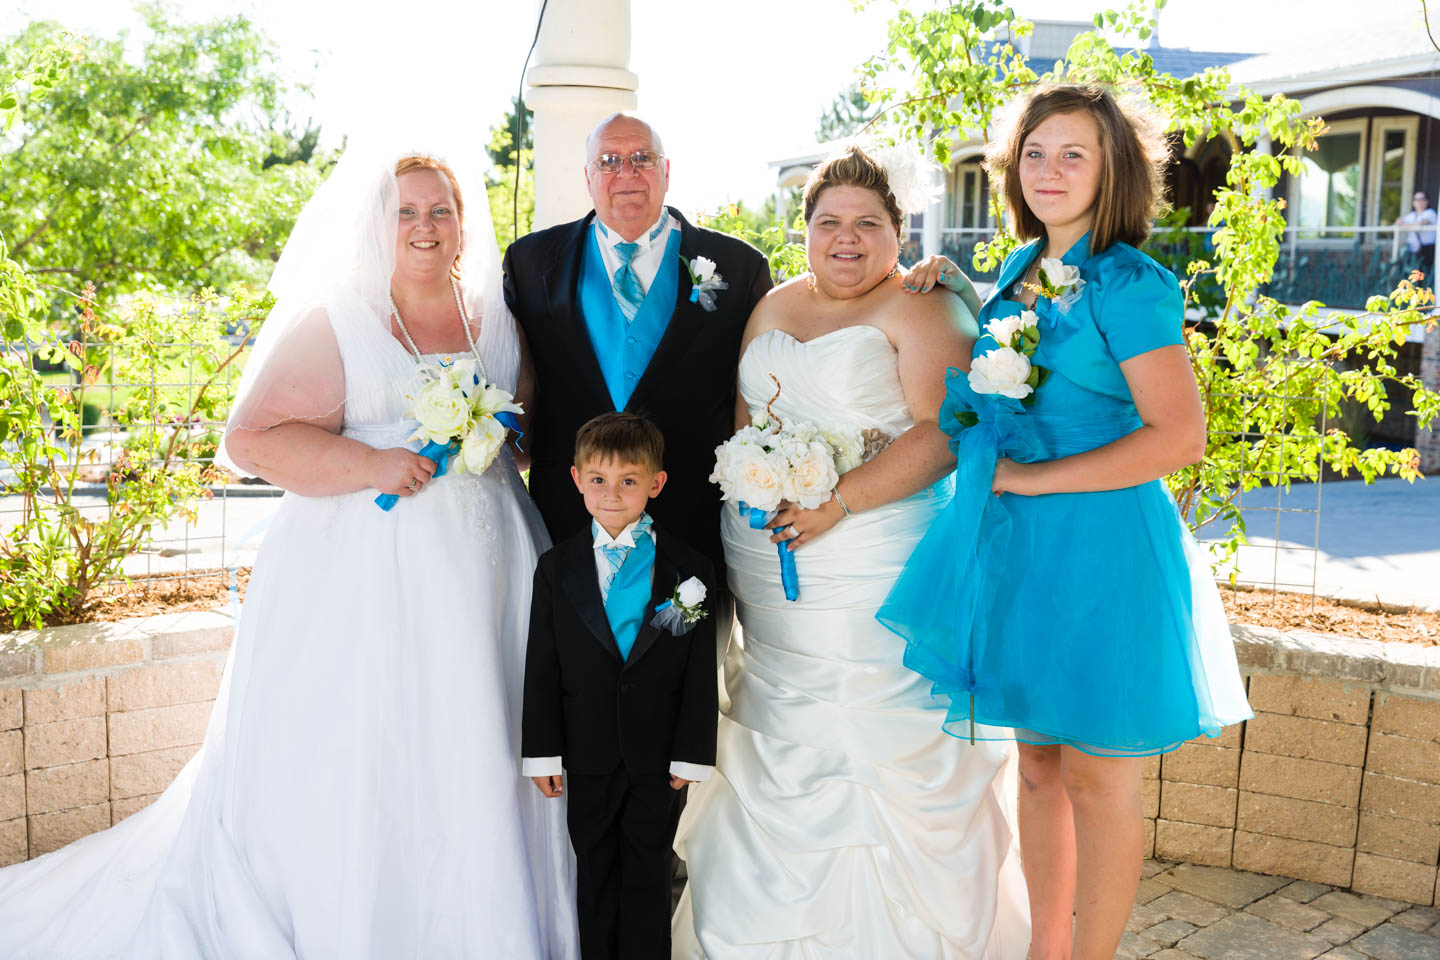 Family group photos after the wedding